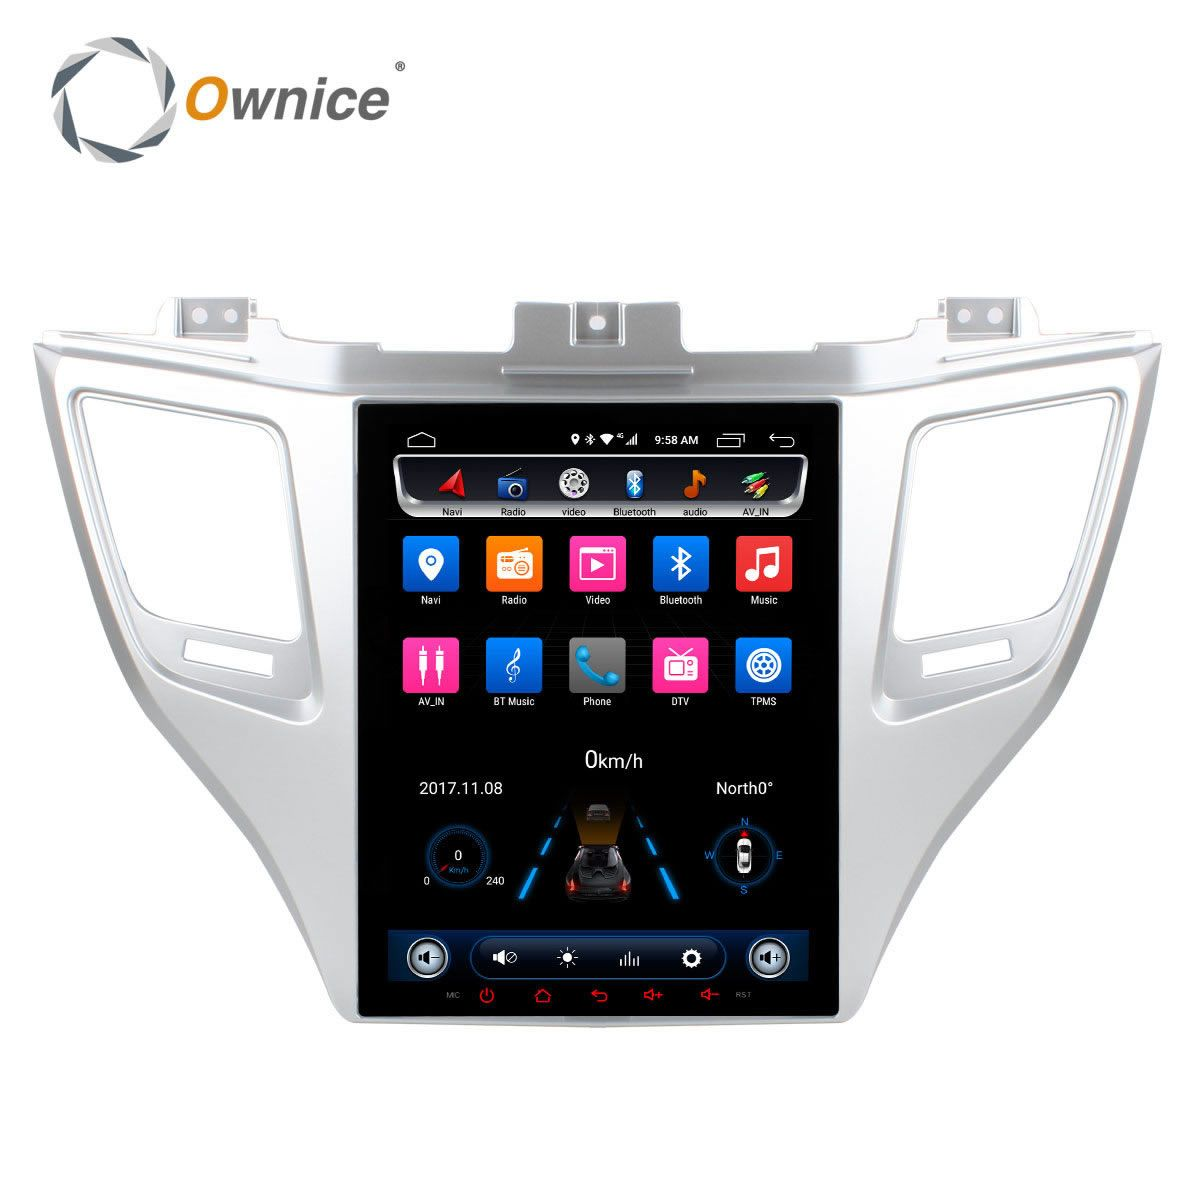 Ownice Android 6.0 Two Din Car DVD Player For Hyundai TUCSON 2015 With 2GB RAM 32g rom GPS Navigation Radio Support car play dvr